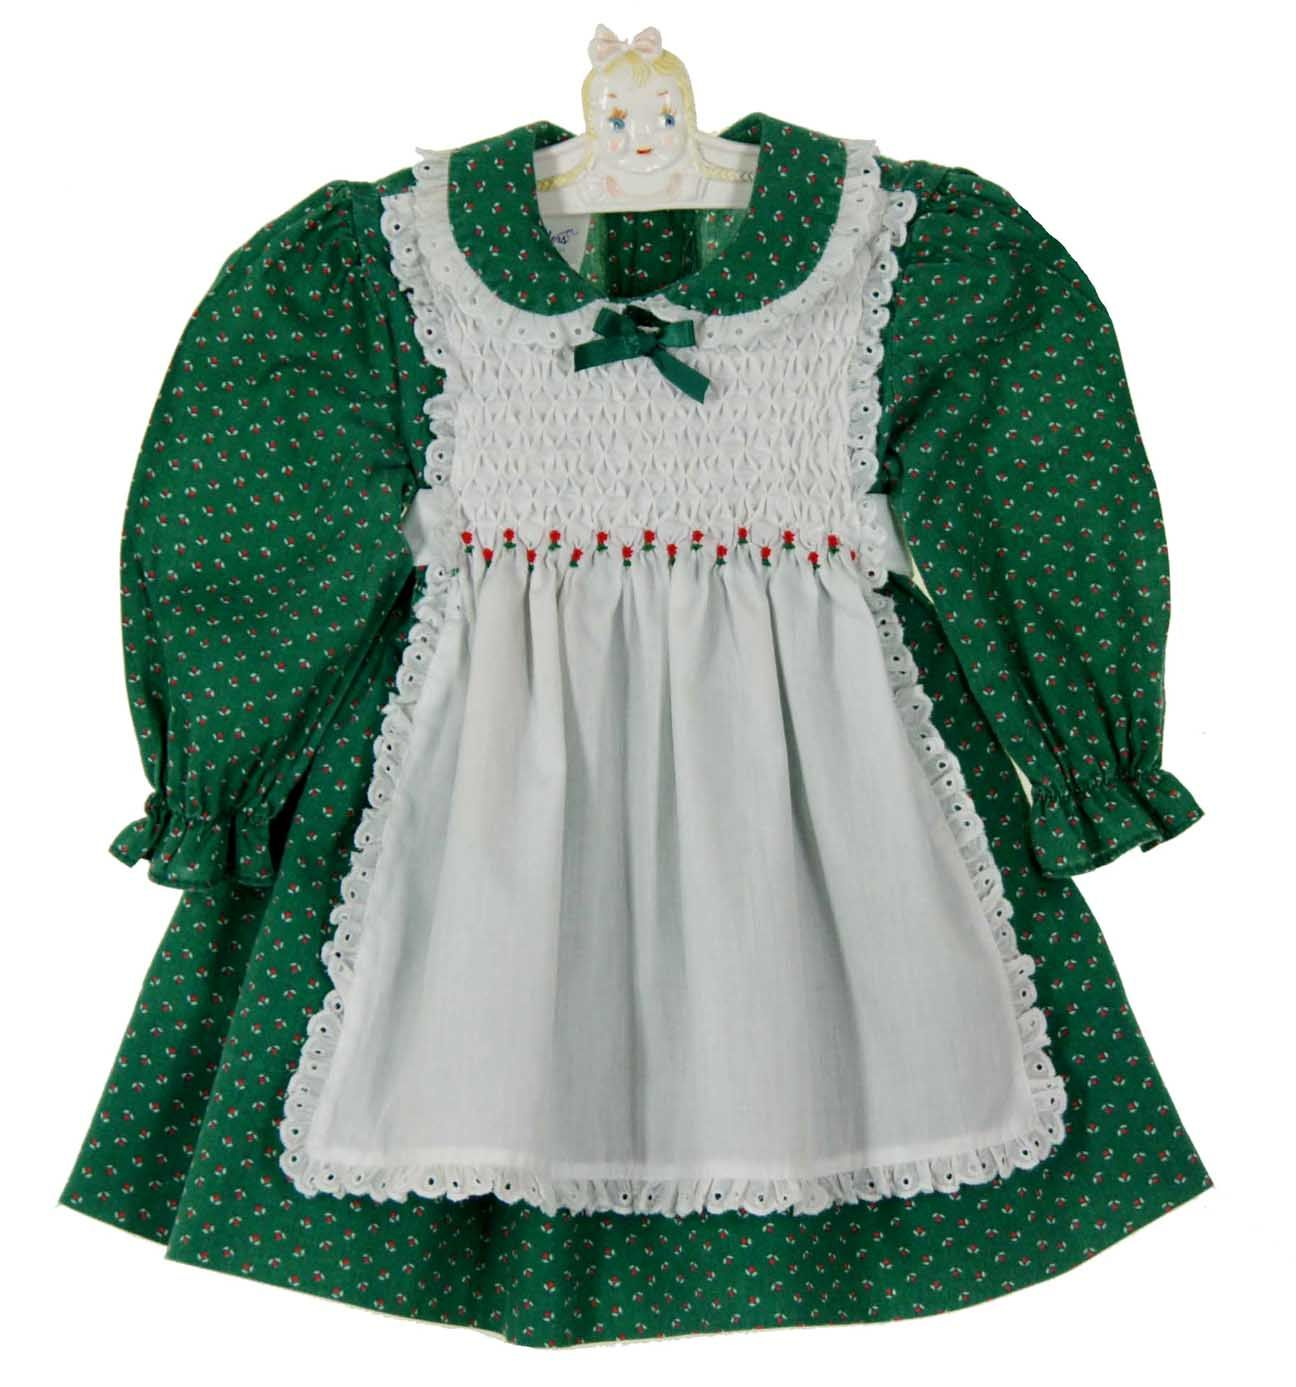 8c58ff90edd8 Polly Flinders Green Flower Print Pinafore Style Dress with White Smocking  $50.00 PollyFlindersPinaforeDress #PollyFlindersChristmasDress